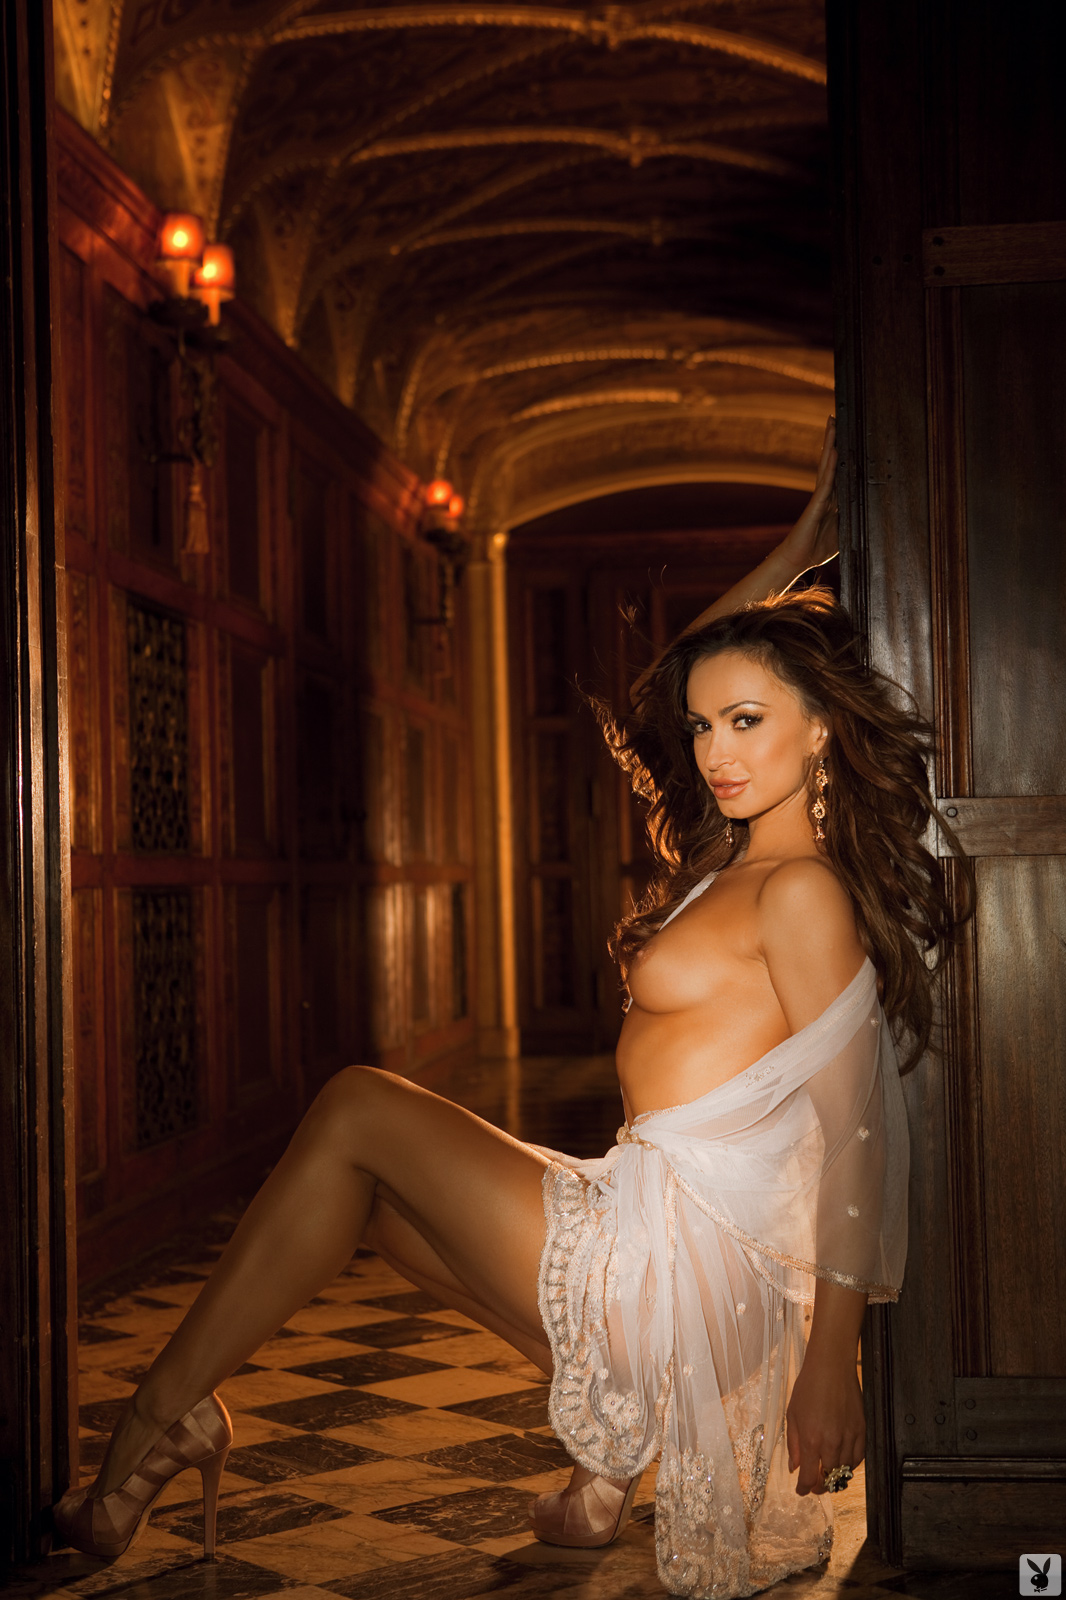 Karina smirnoff nude real message, matchless)))